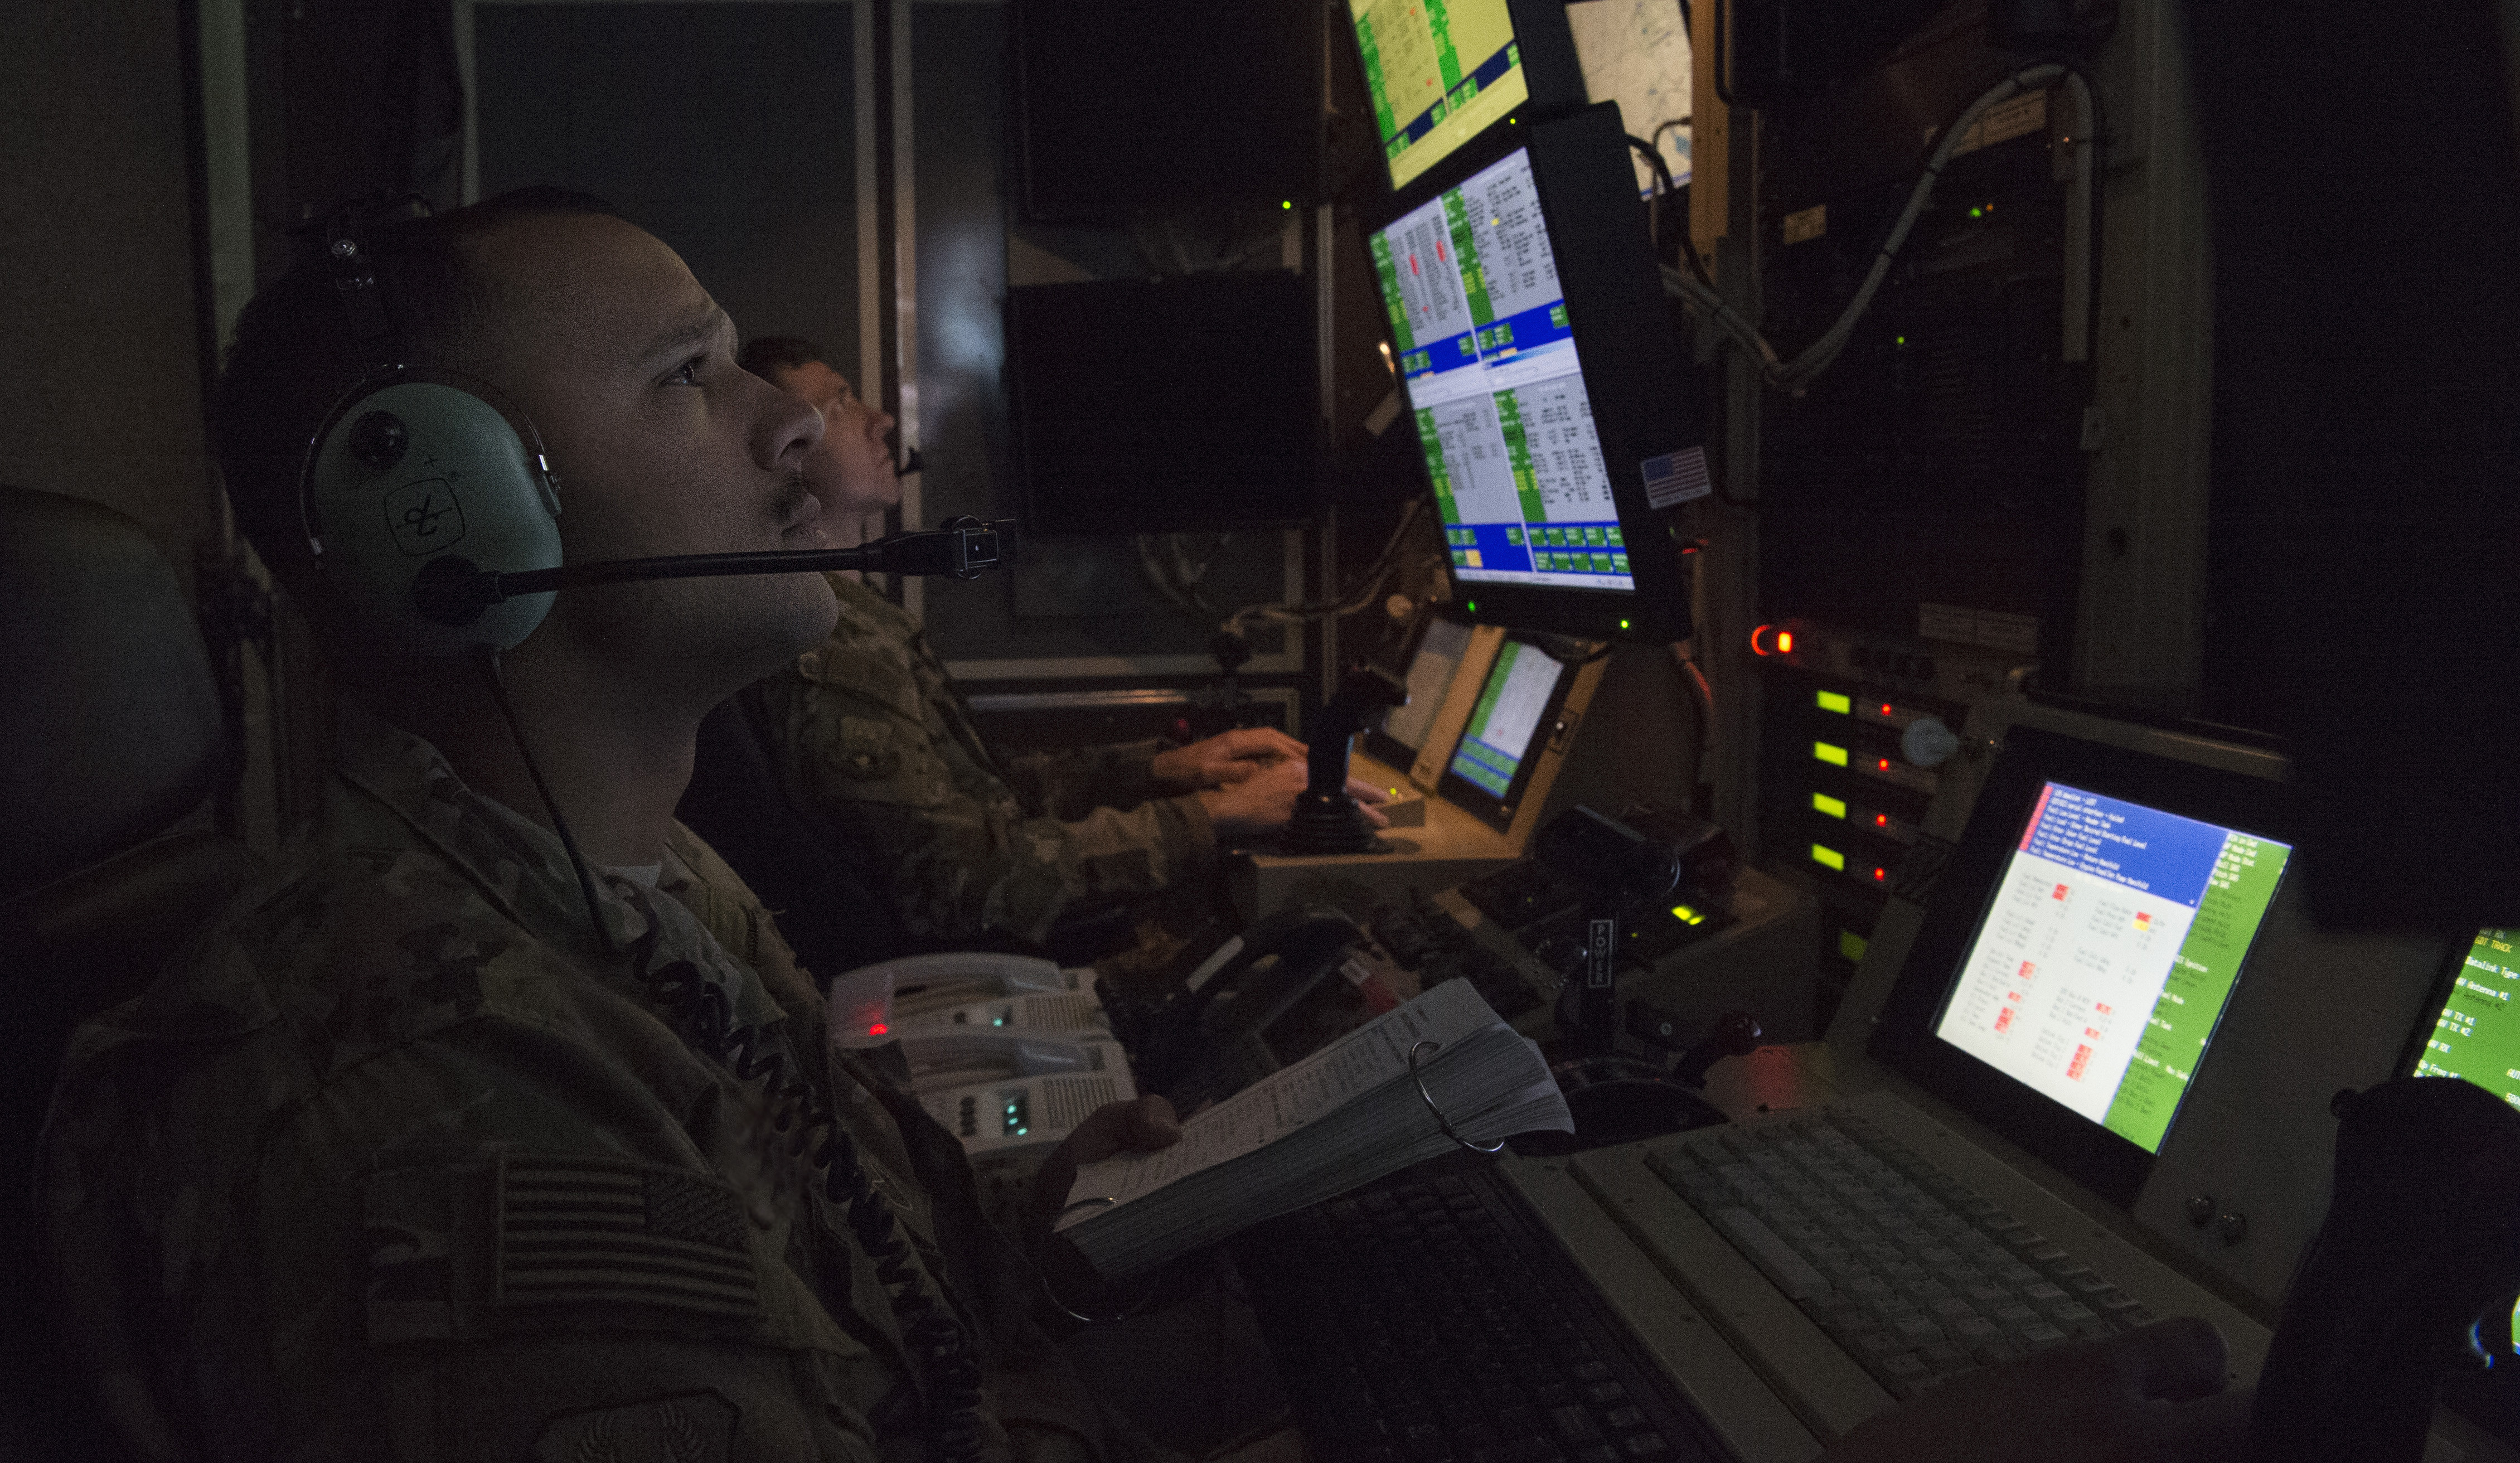 Capt. Derrick, 46th Expeditionary Attack Squadron pilot, and Staff Sgt. Marcus, 46th EATKS MQ-9 sensor operator, check aircraft system operations during preflight of an MQ-9 Reaper at an undisclosed location in Southwest Asia, Feb. 21, 2019.